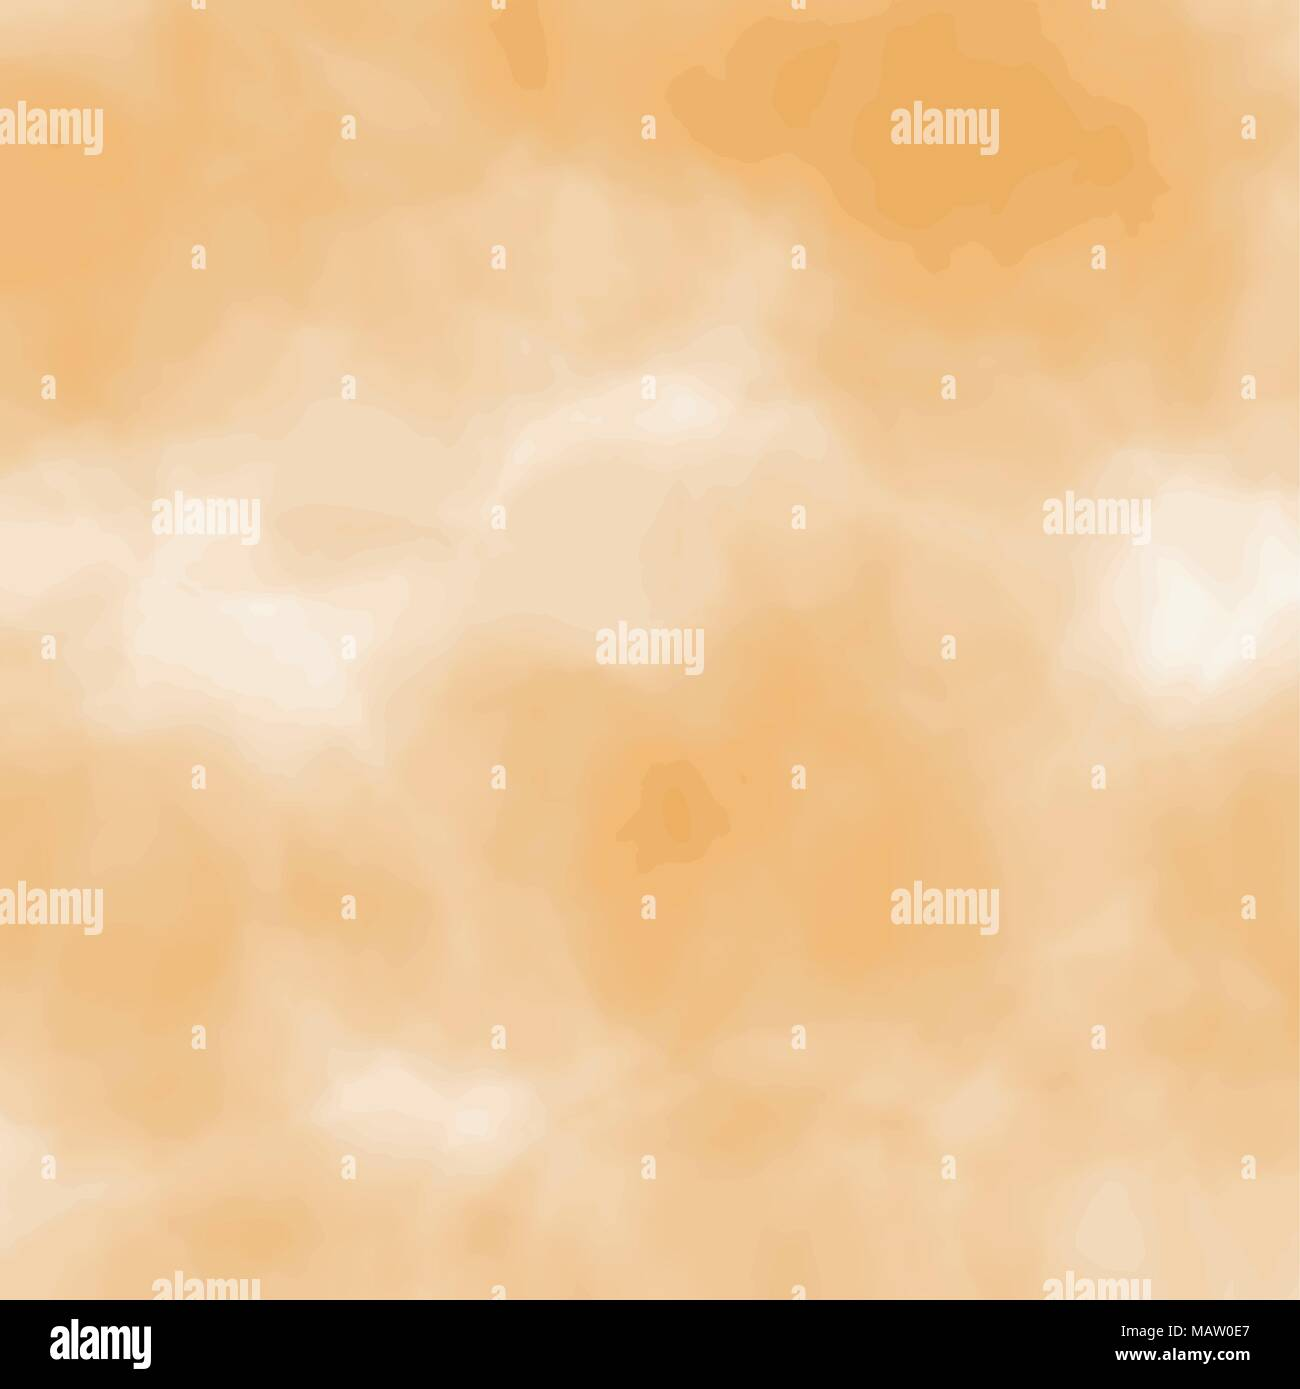 yellow watercolor blurred background pattern, vector illustration - Stock Vector